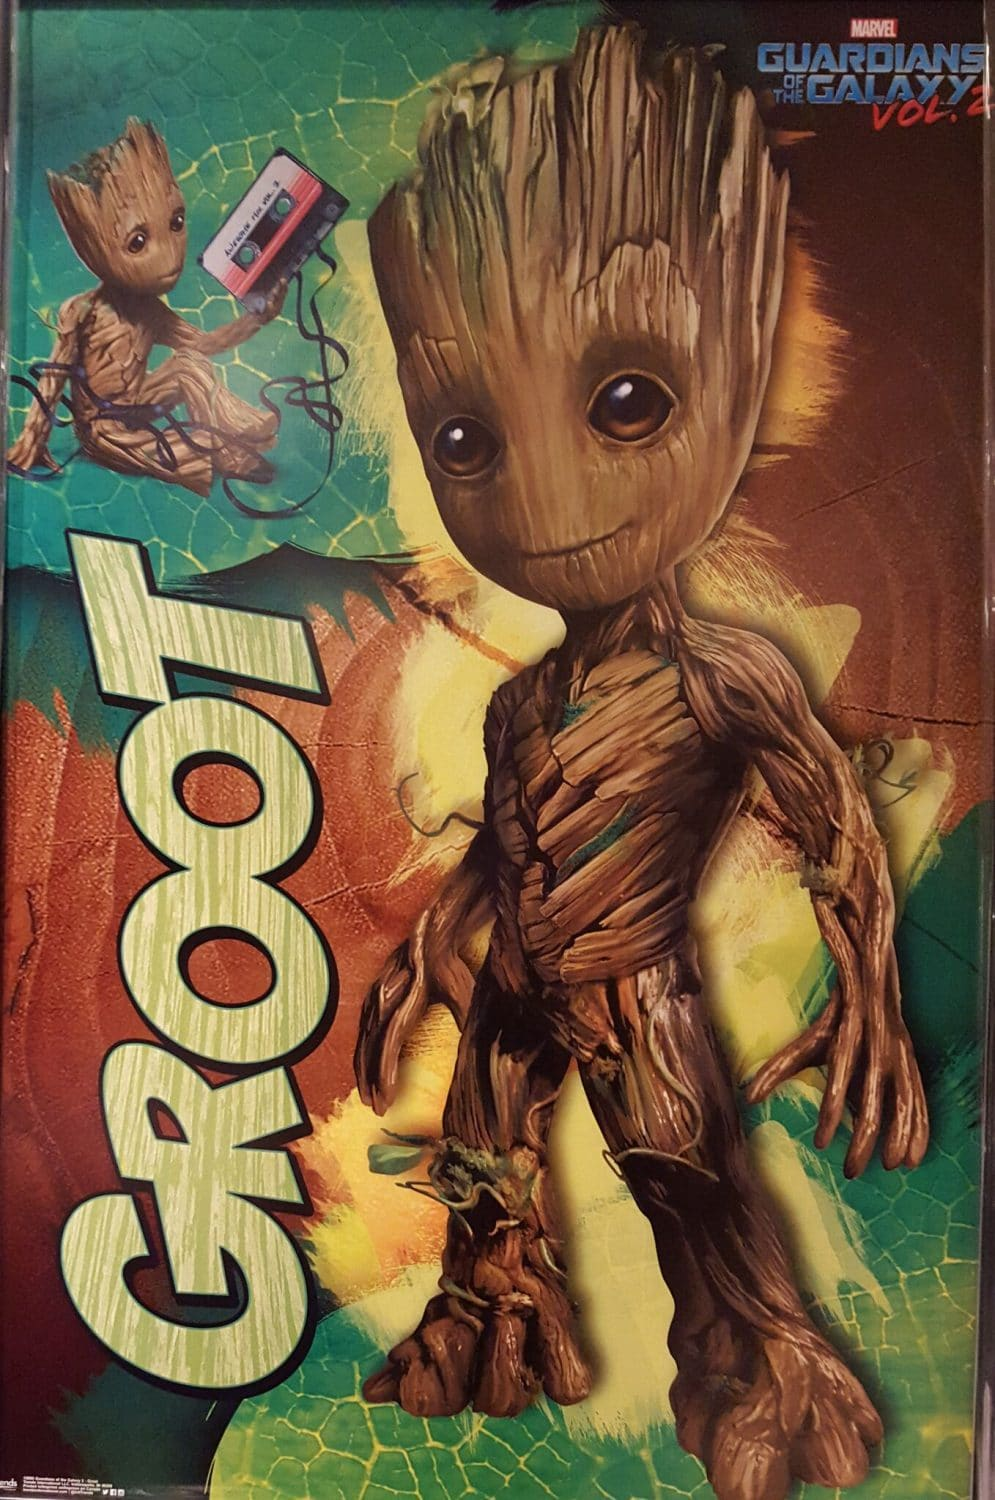 Guardian-of-the-galaxy-vol-2-high-quality-printable-posters-wallpapers-garden-of-the-galaxy-baby-groot